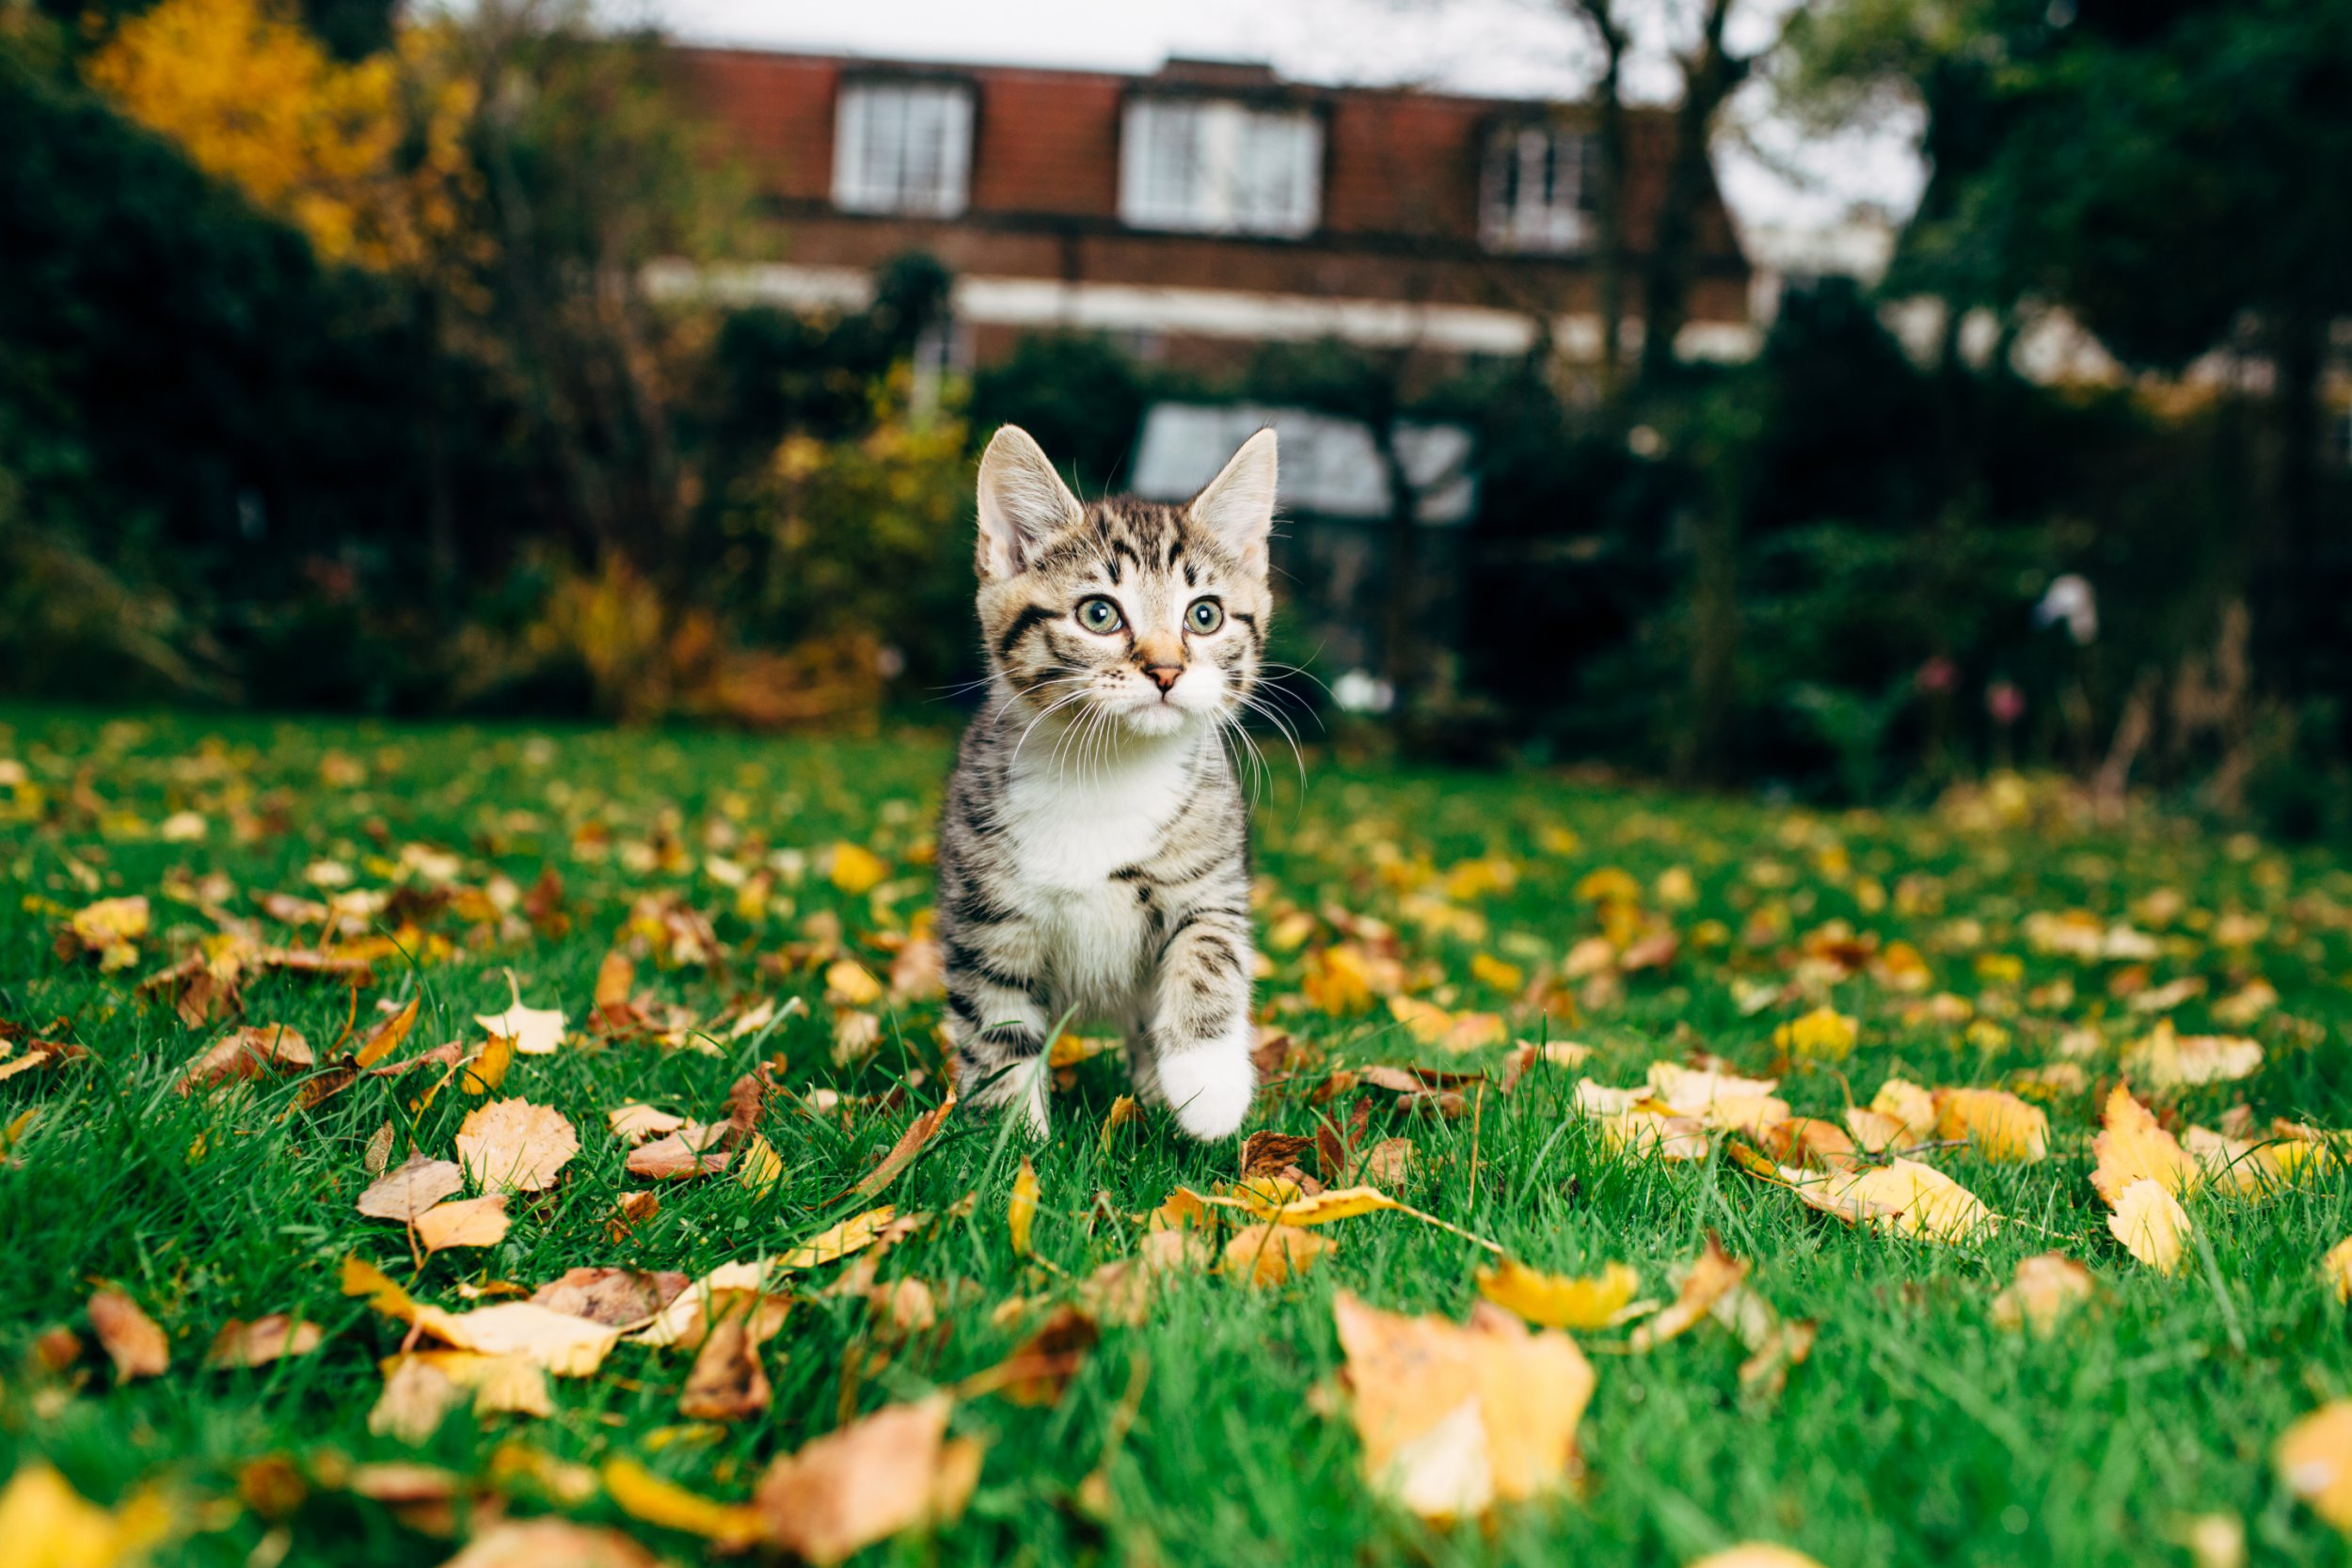 Is your garden safe for pets?